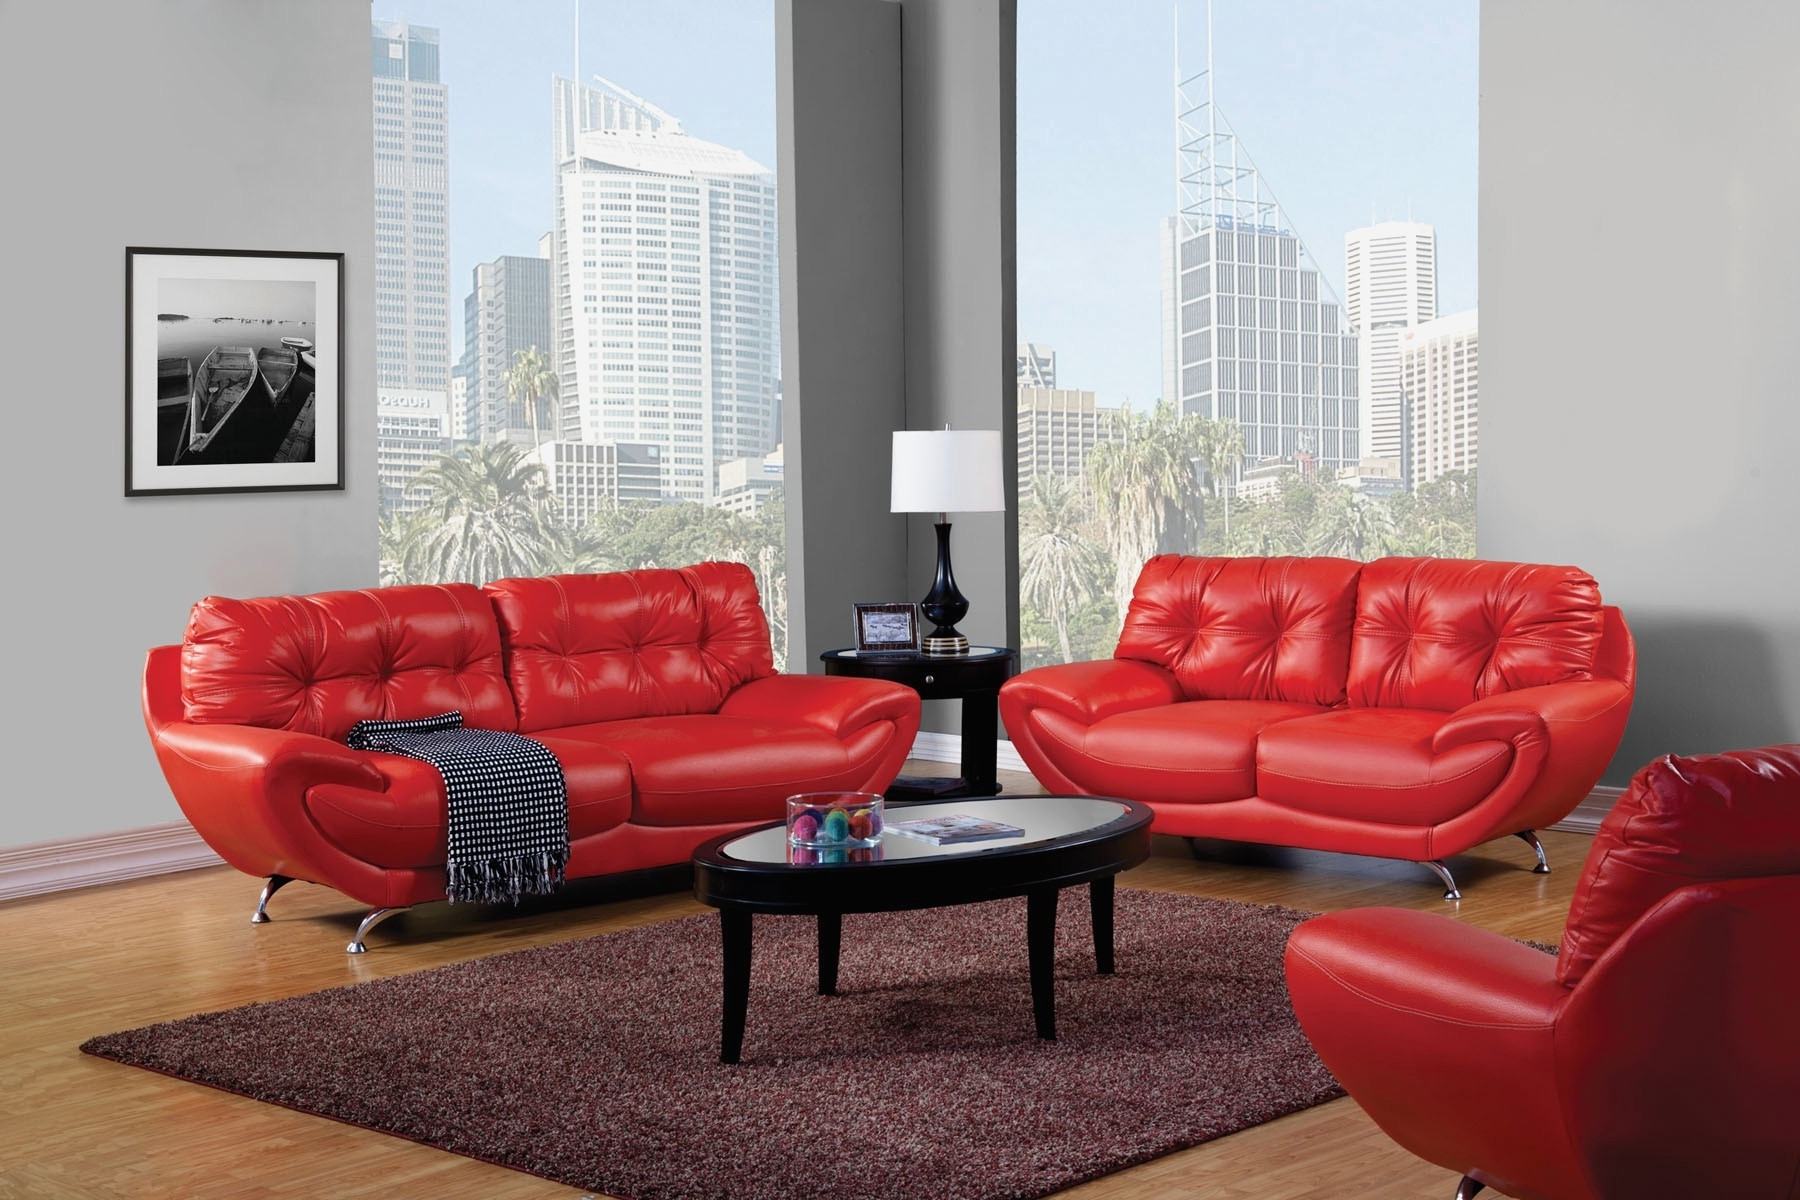 Current Red Leather Couches For Living Room Intended For Living Room : Creative Red Leather Couch Living Room Home Design (View 1 of 15)